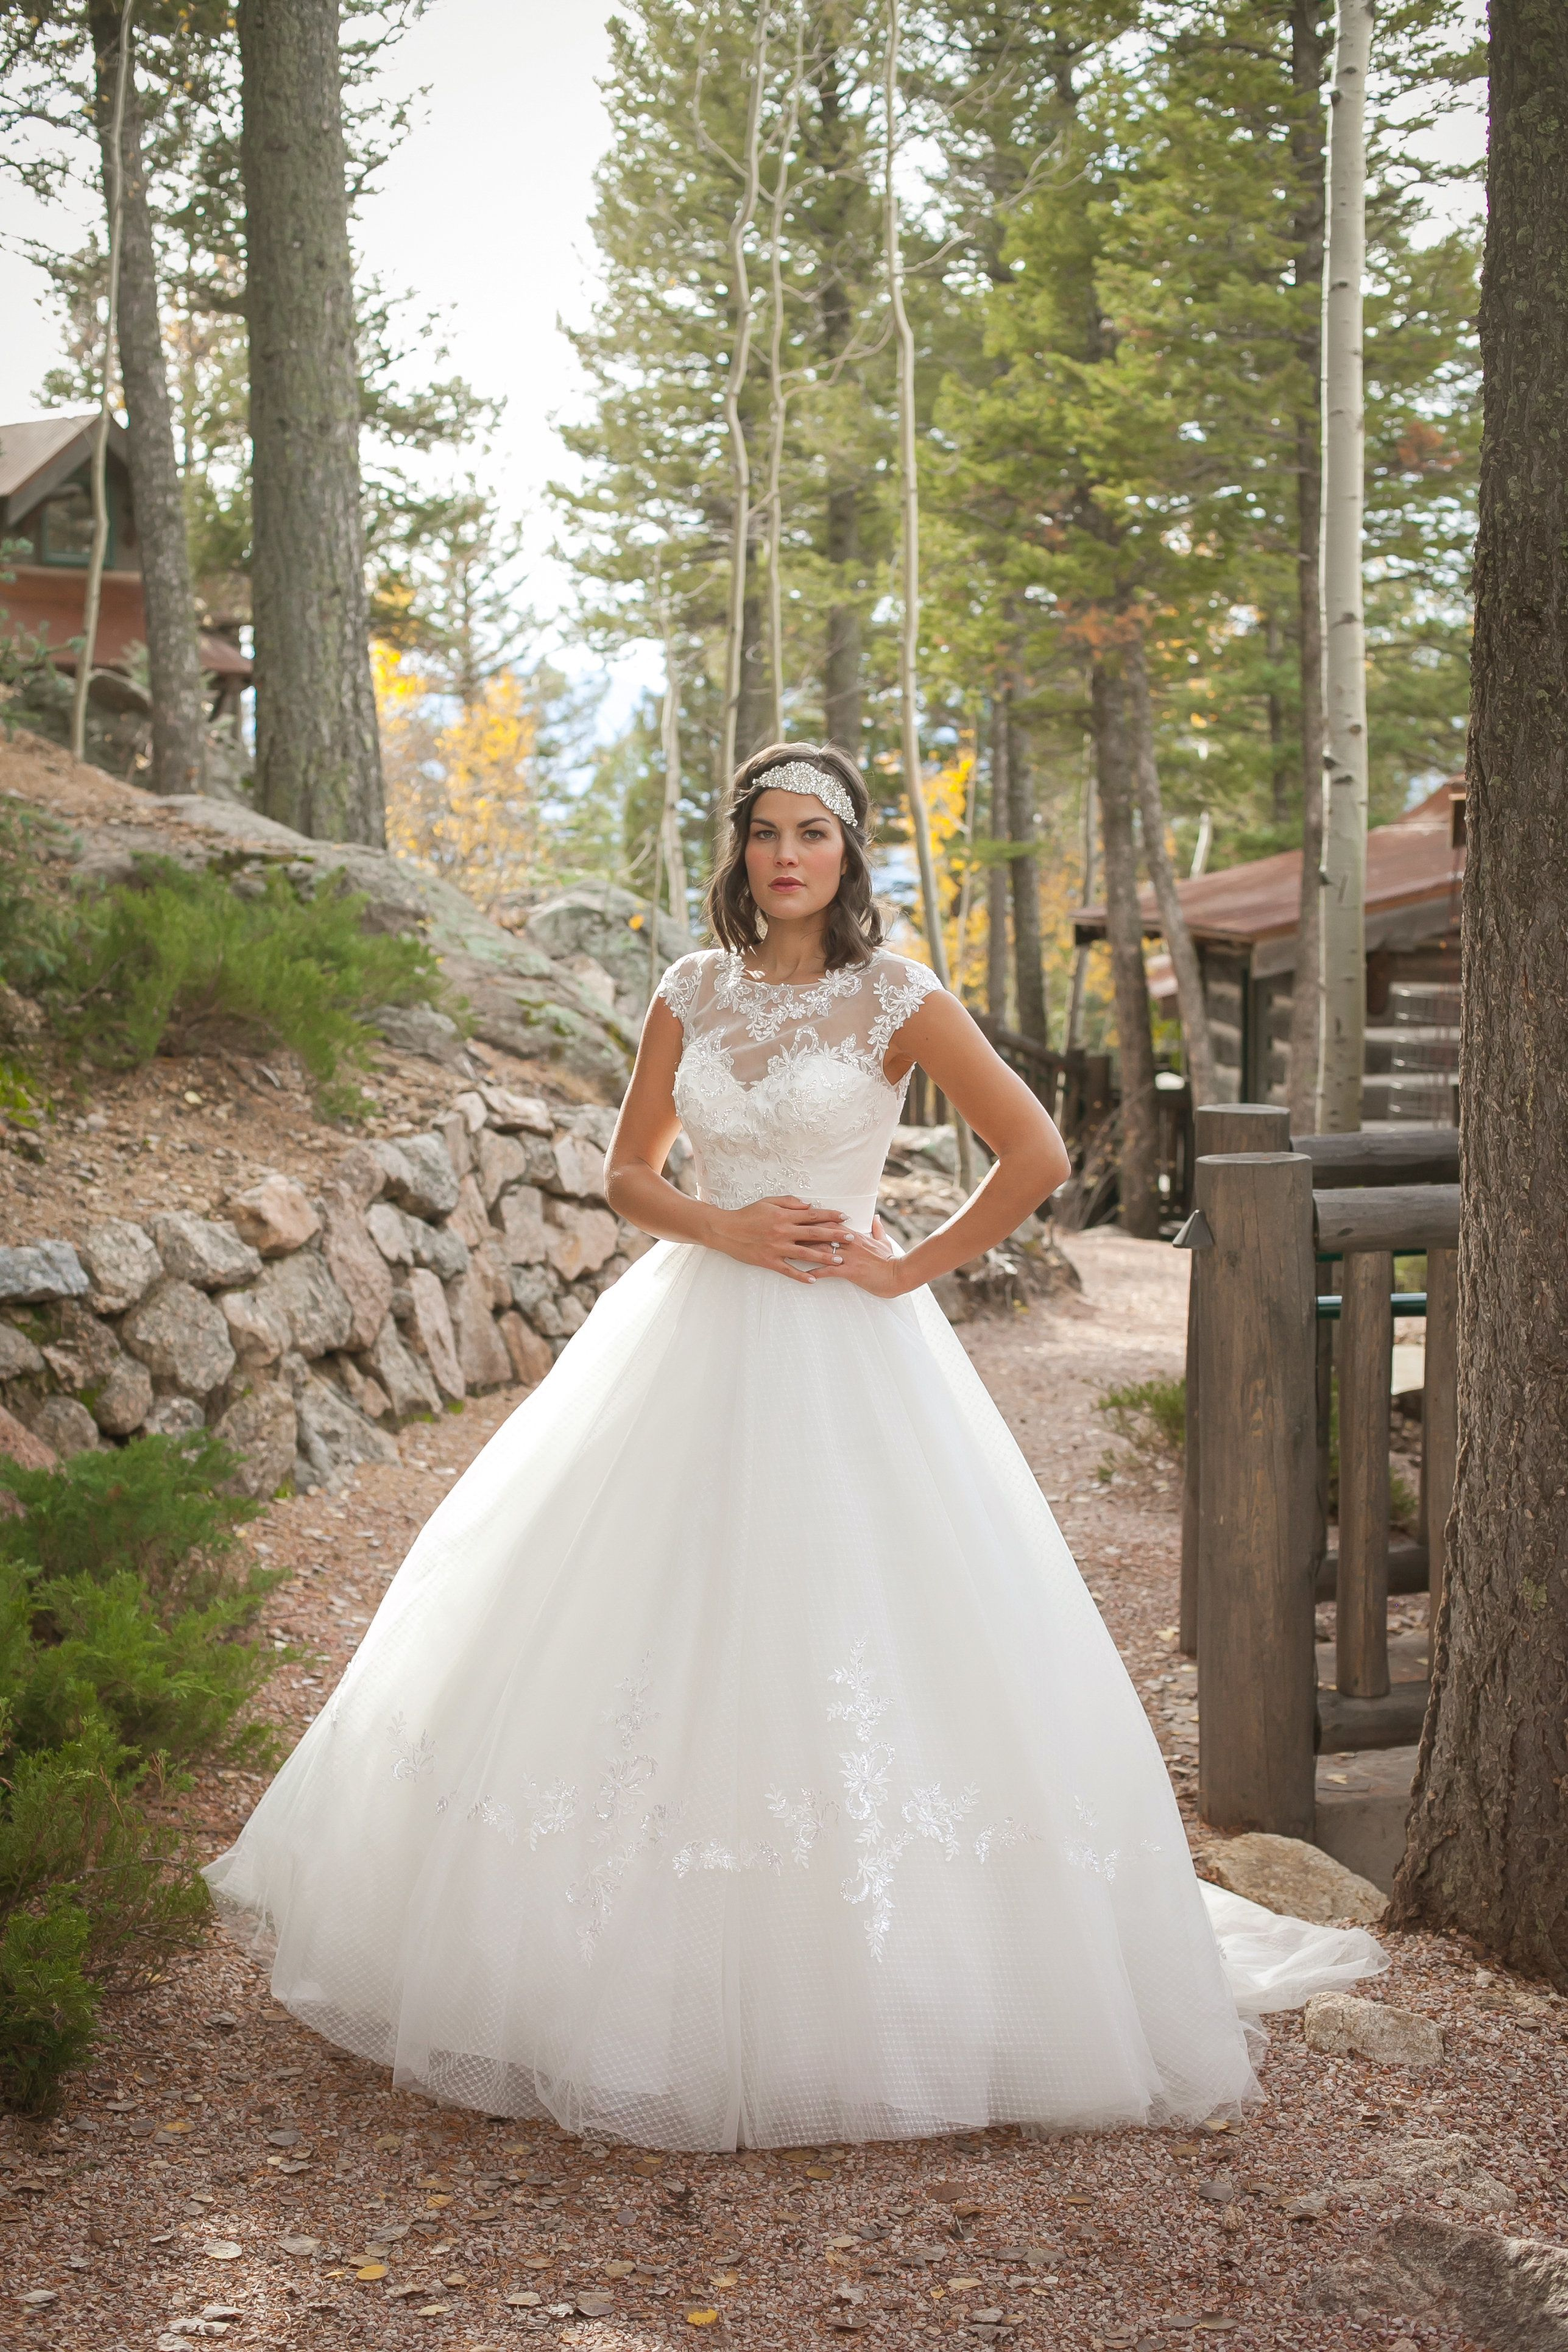 Check Out This Beautiful Wedding Dress From The Divina Collection Designed By Mindi Owner